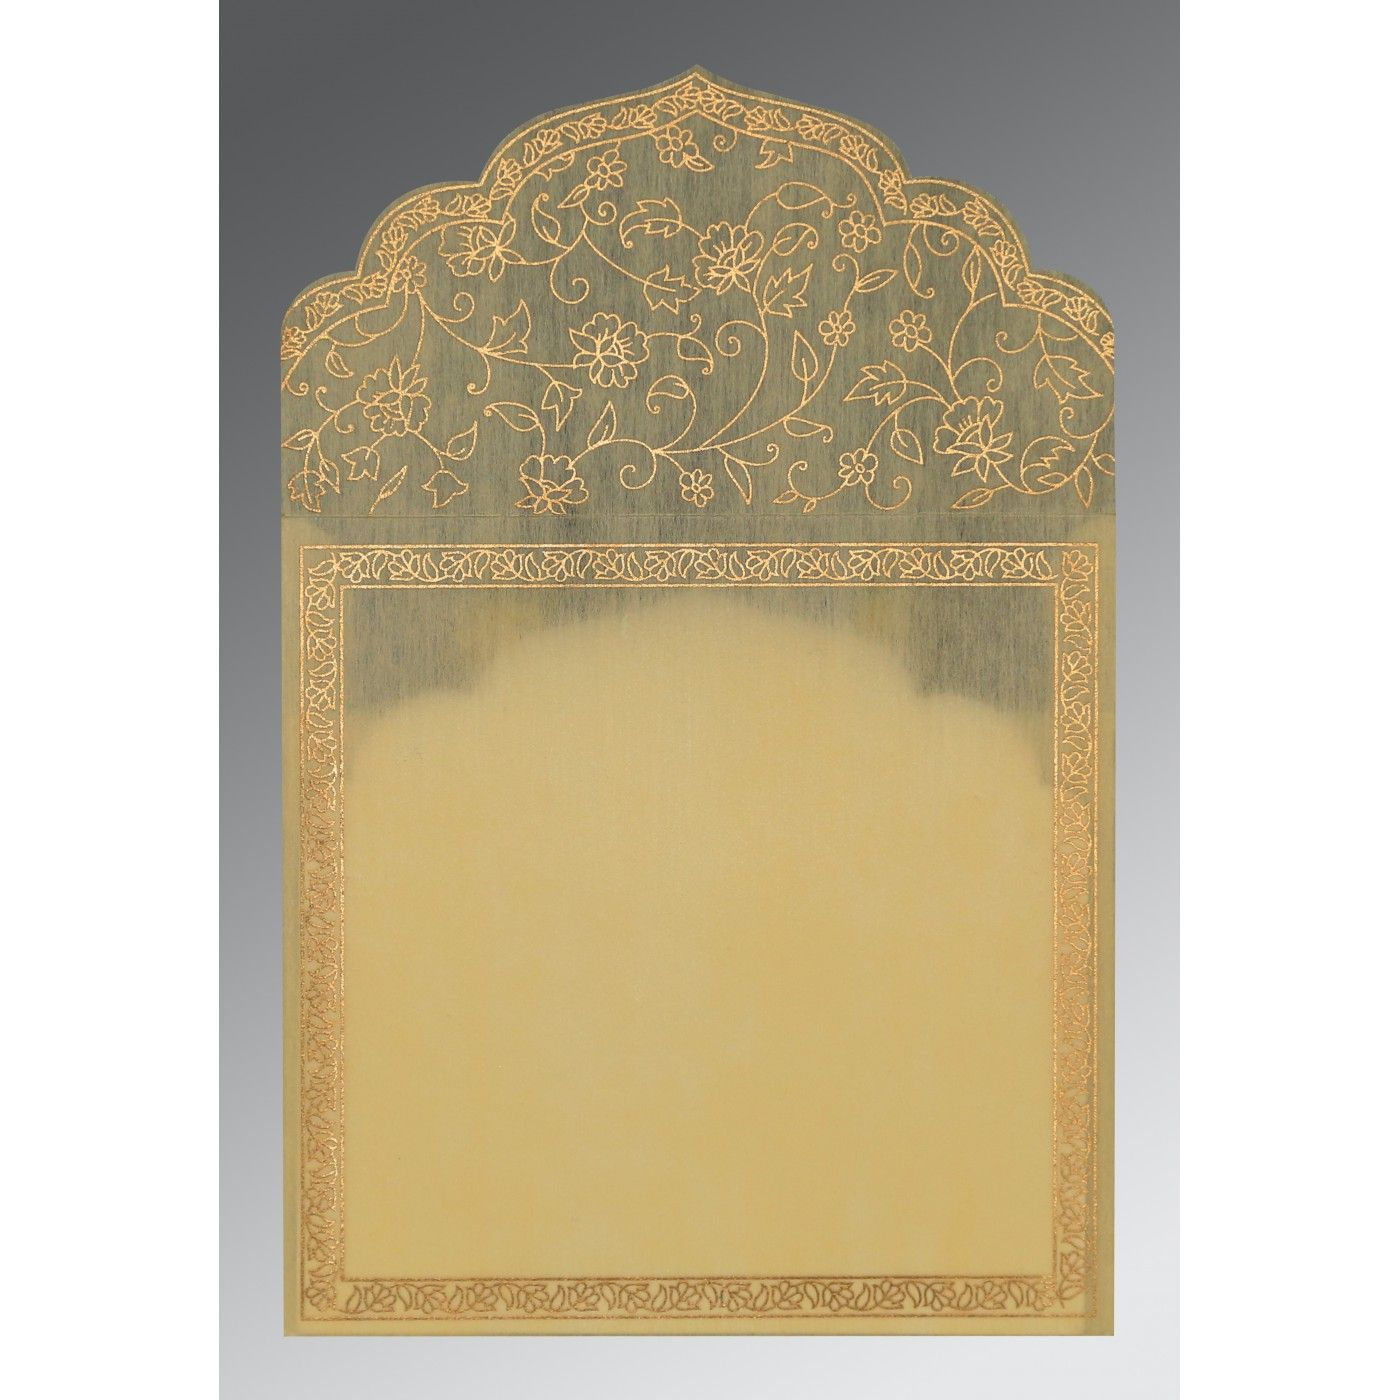 MANGO YELLOW WOOLY SCREEN PRINTED WEDDING INVITATION : CSO-8211K - IndianWeddingCards